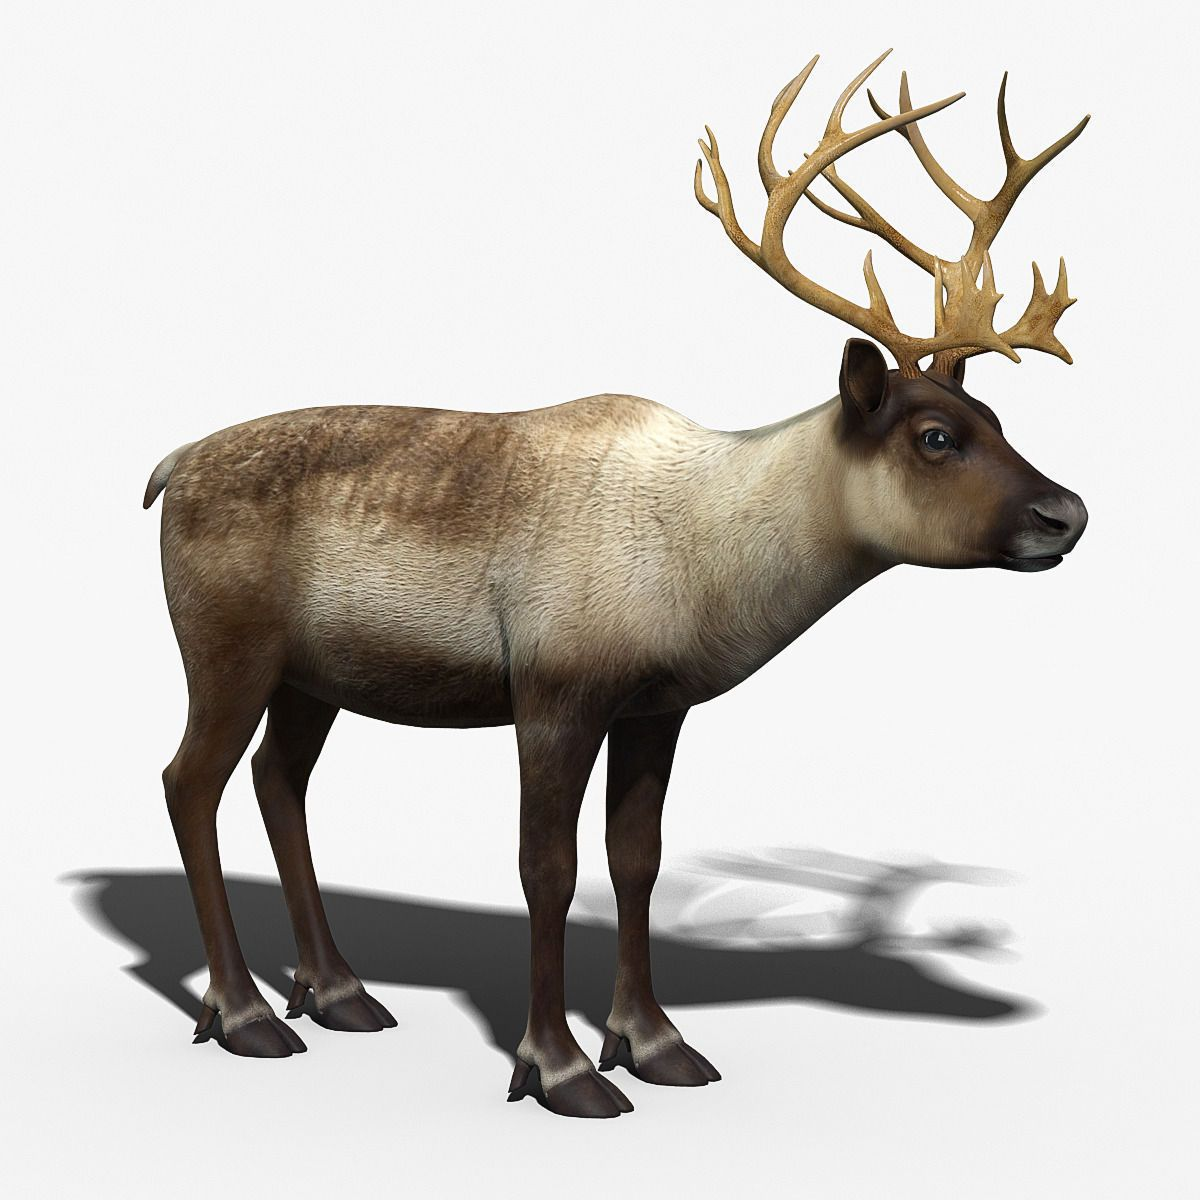 Reindeer by cgmobile. / You can buy this 3D model for 99